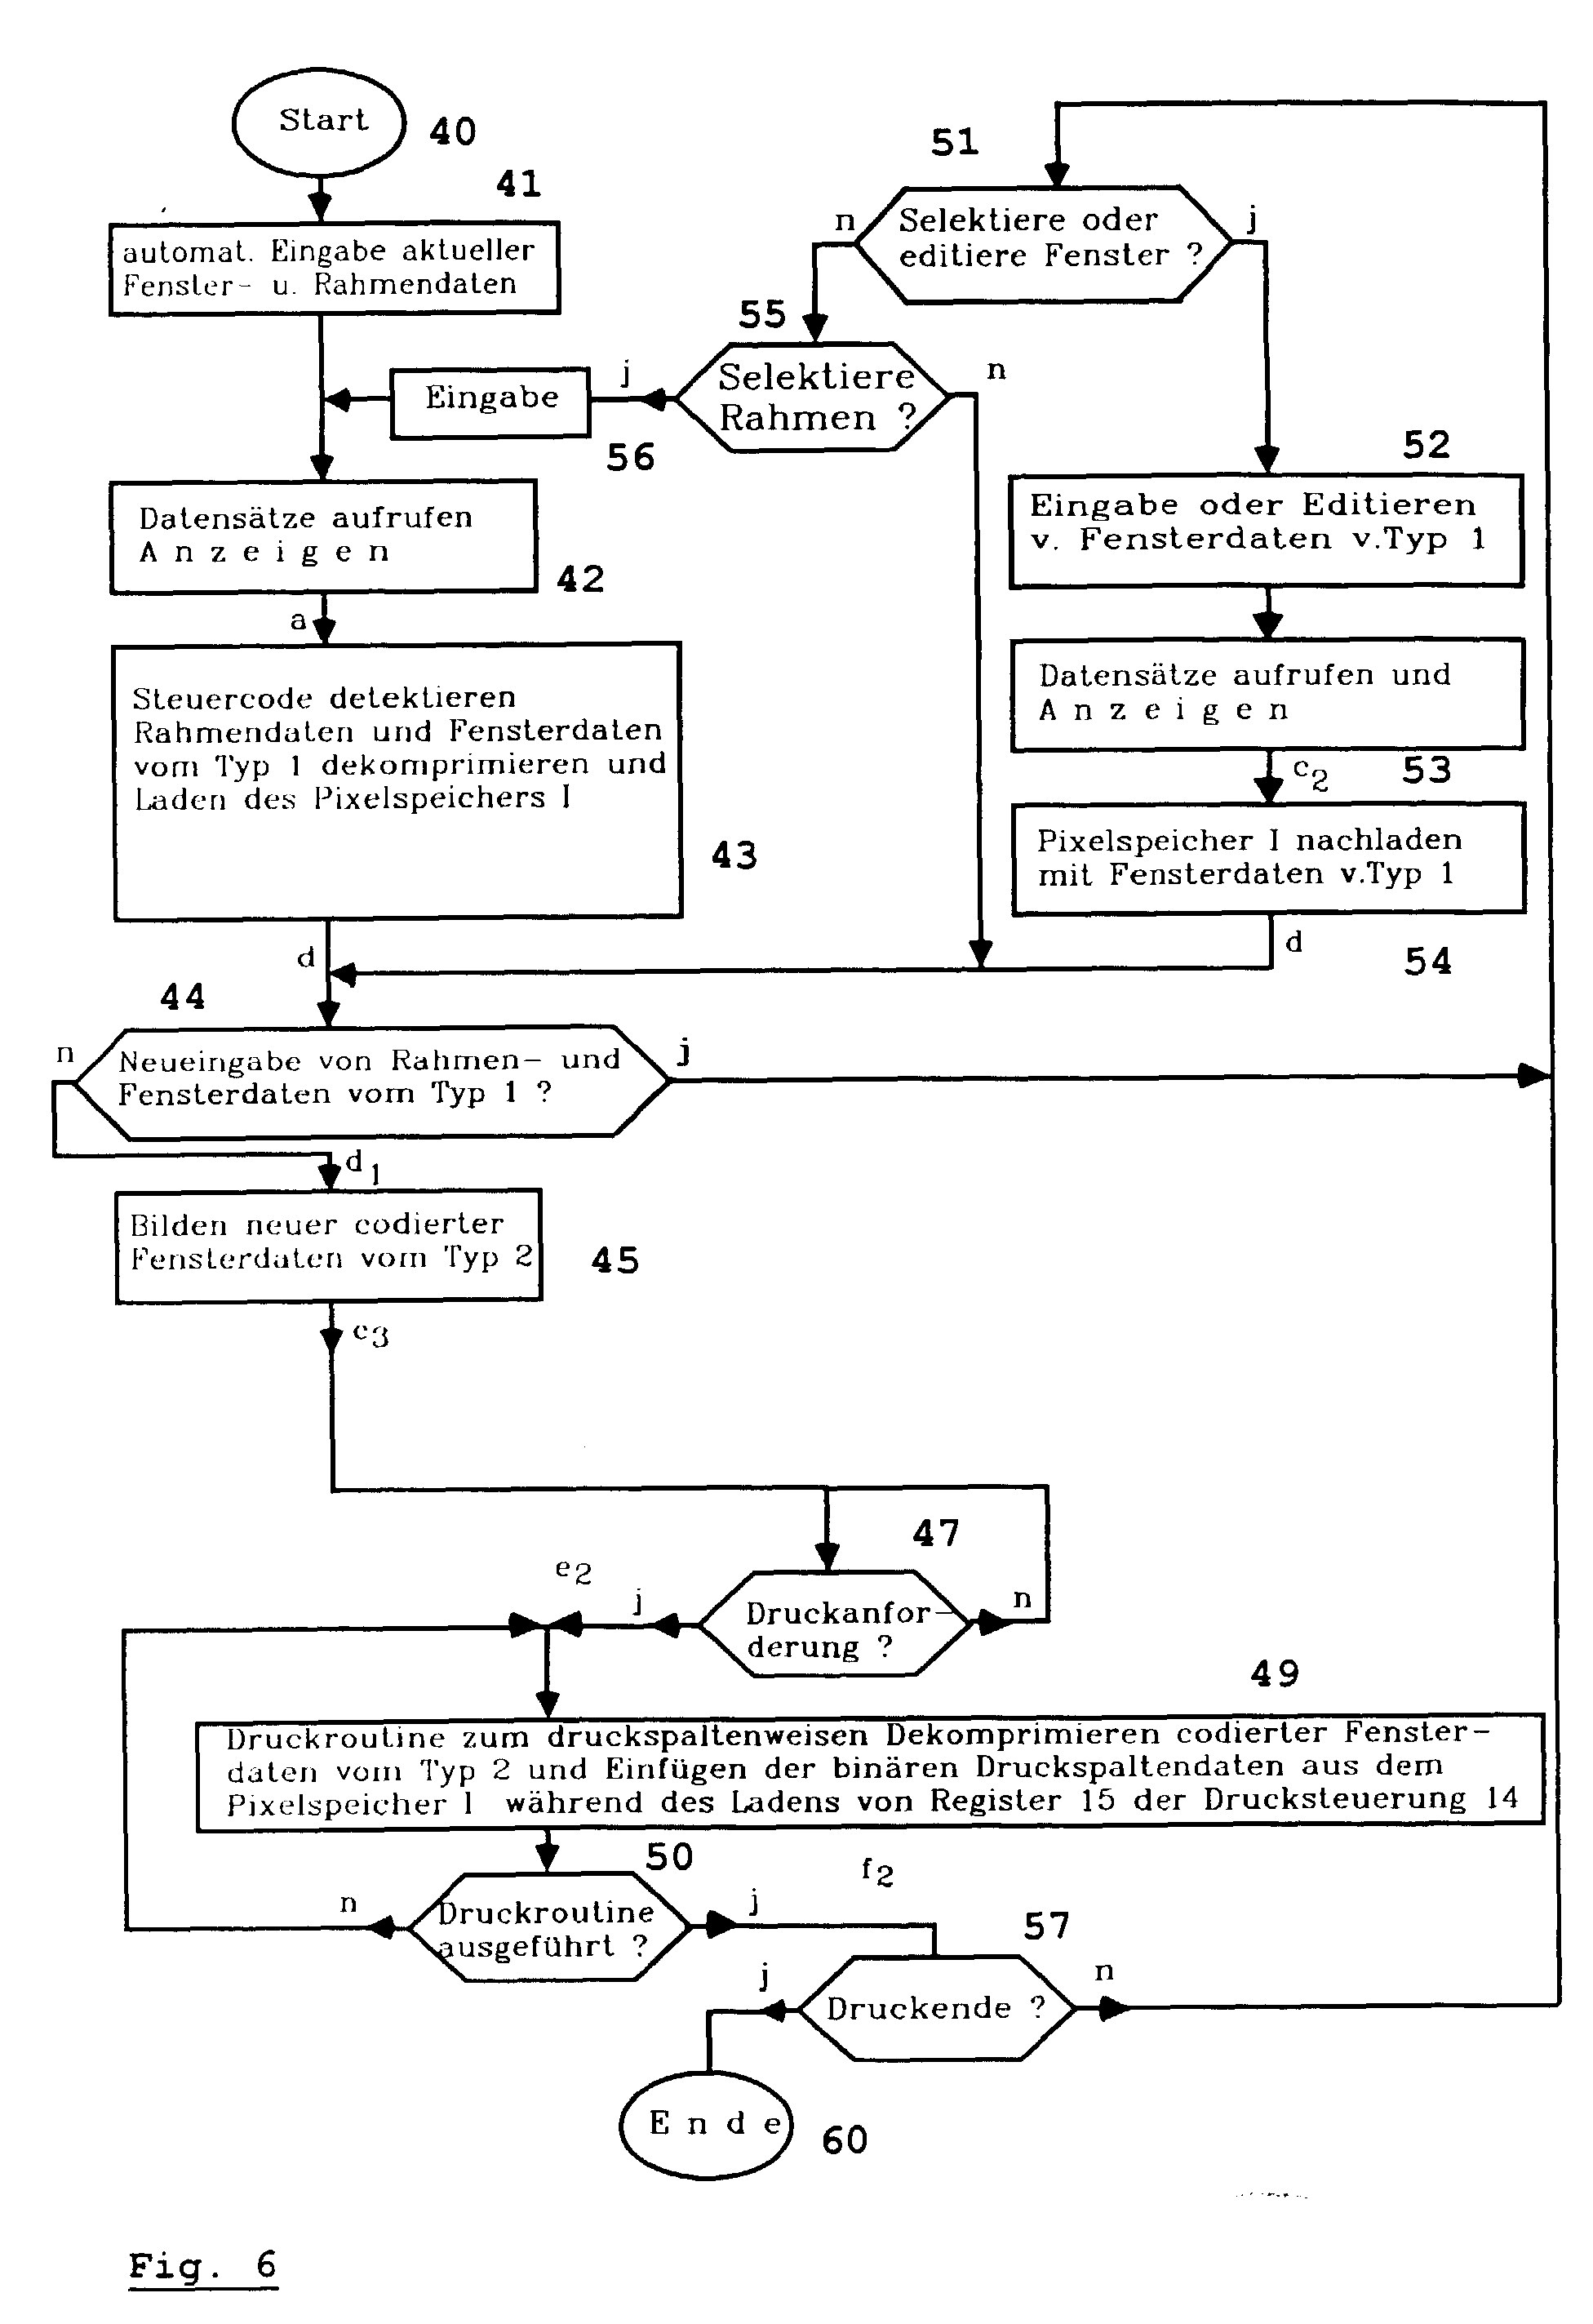 Patent EP A2 Method for the verification of security prints